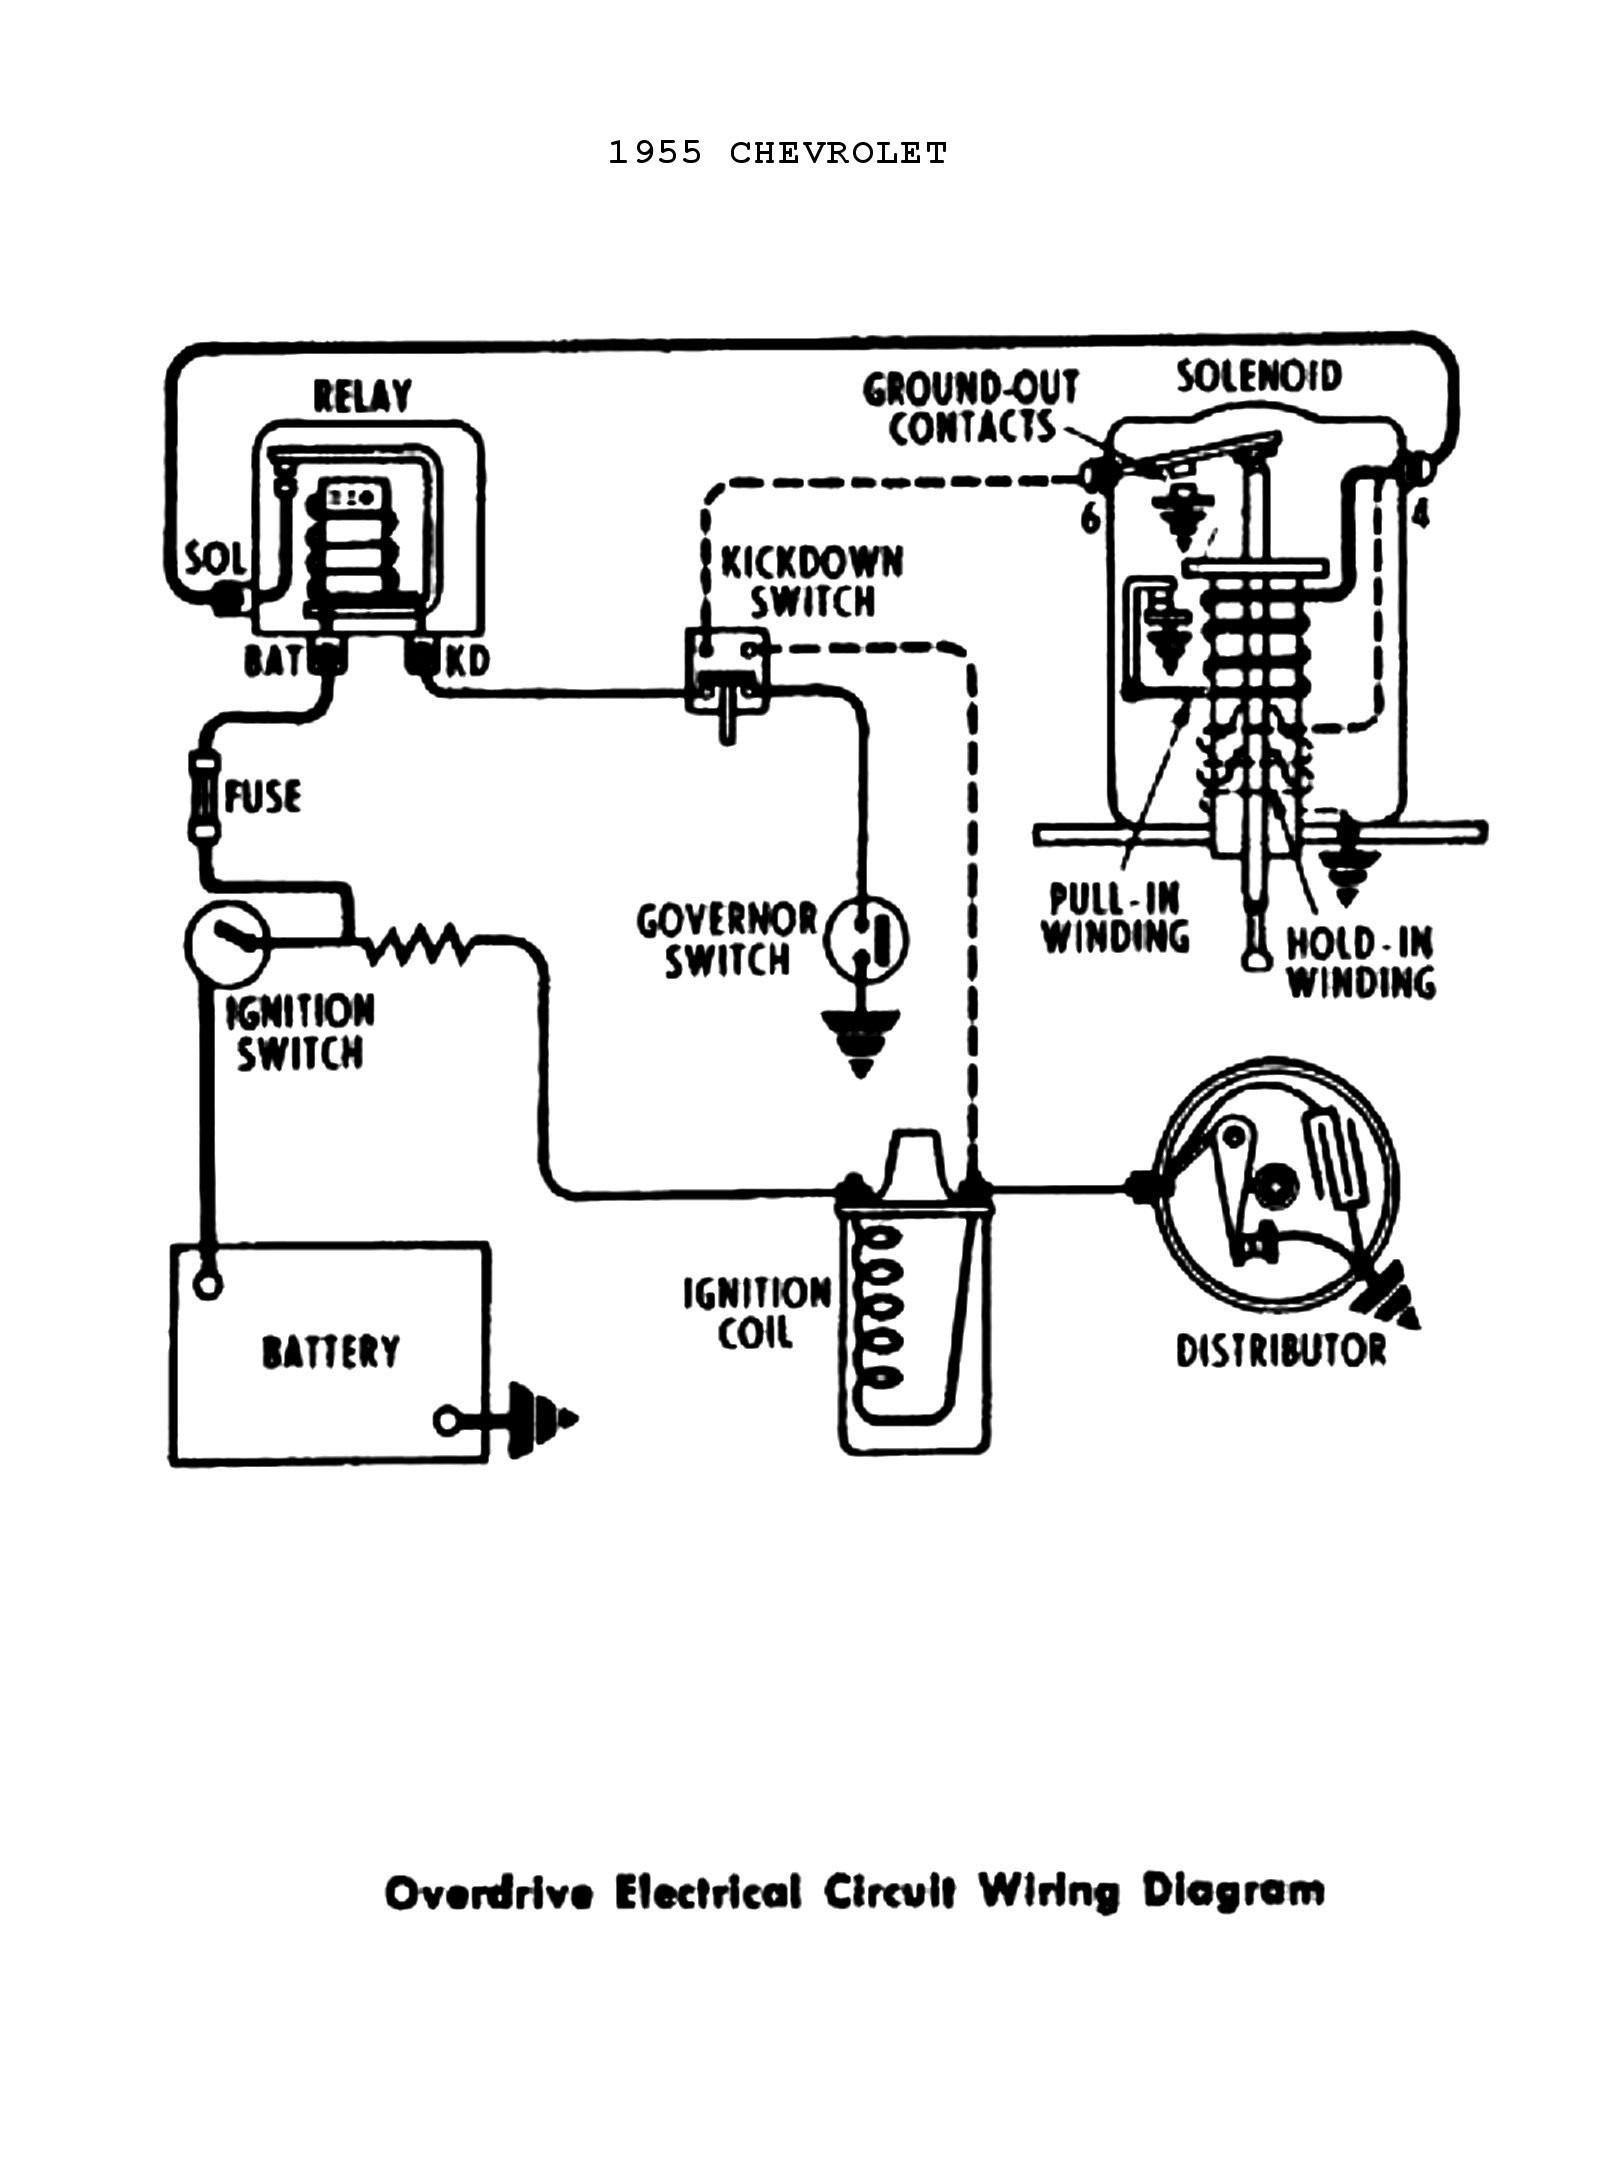 Car Ignition System Diagram Car Ignition System Wiring Diagram Positive Ground Ignition Wiring Of Car Ignition System Diagram